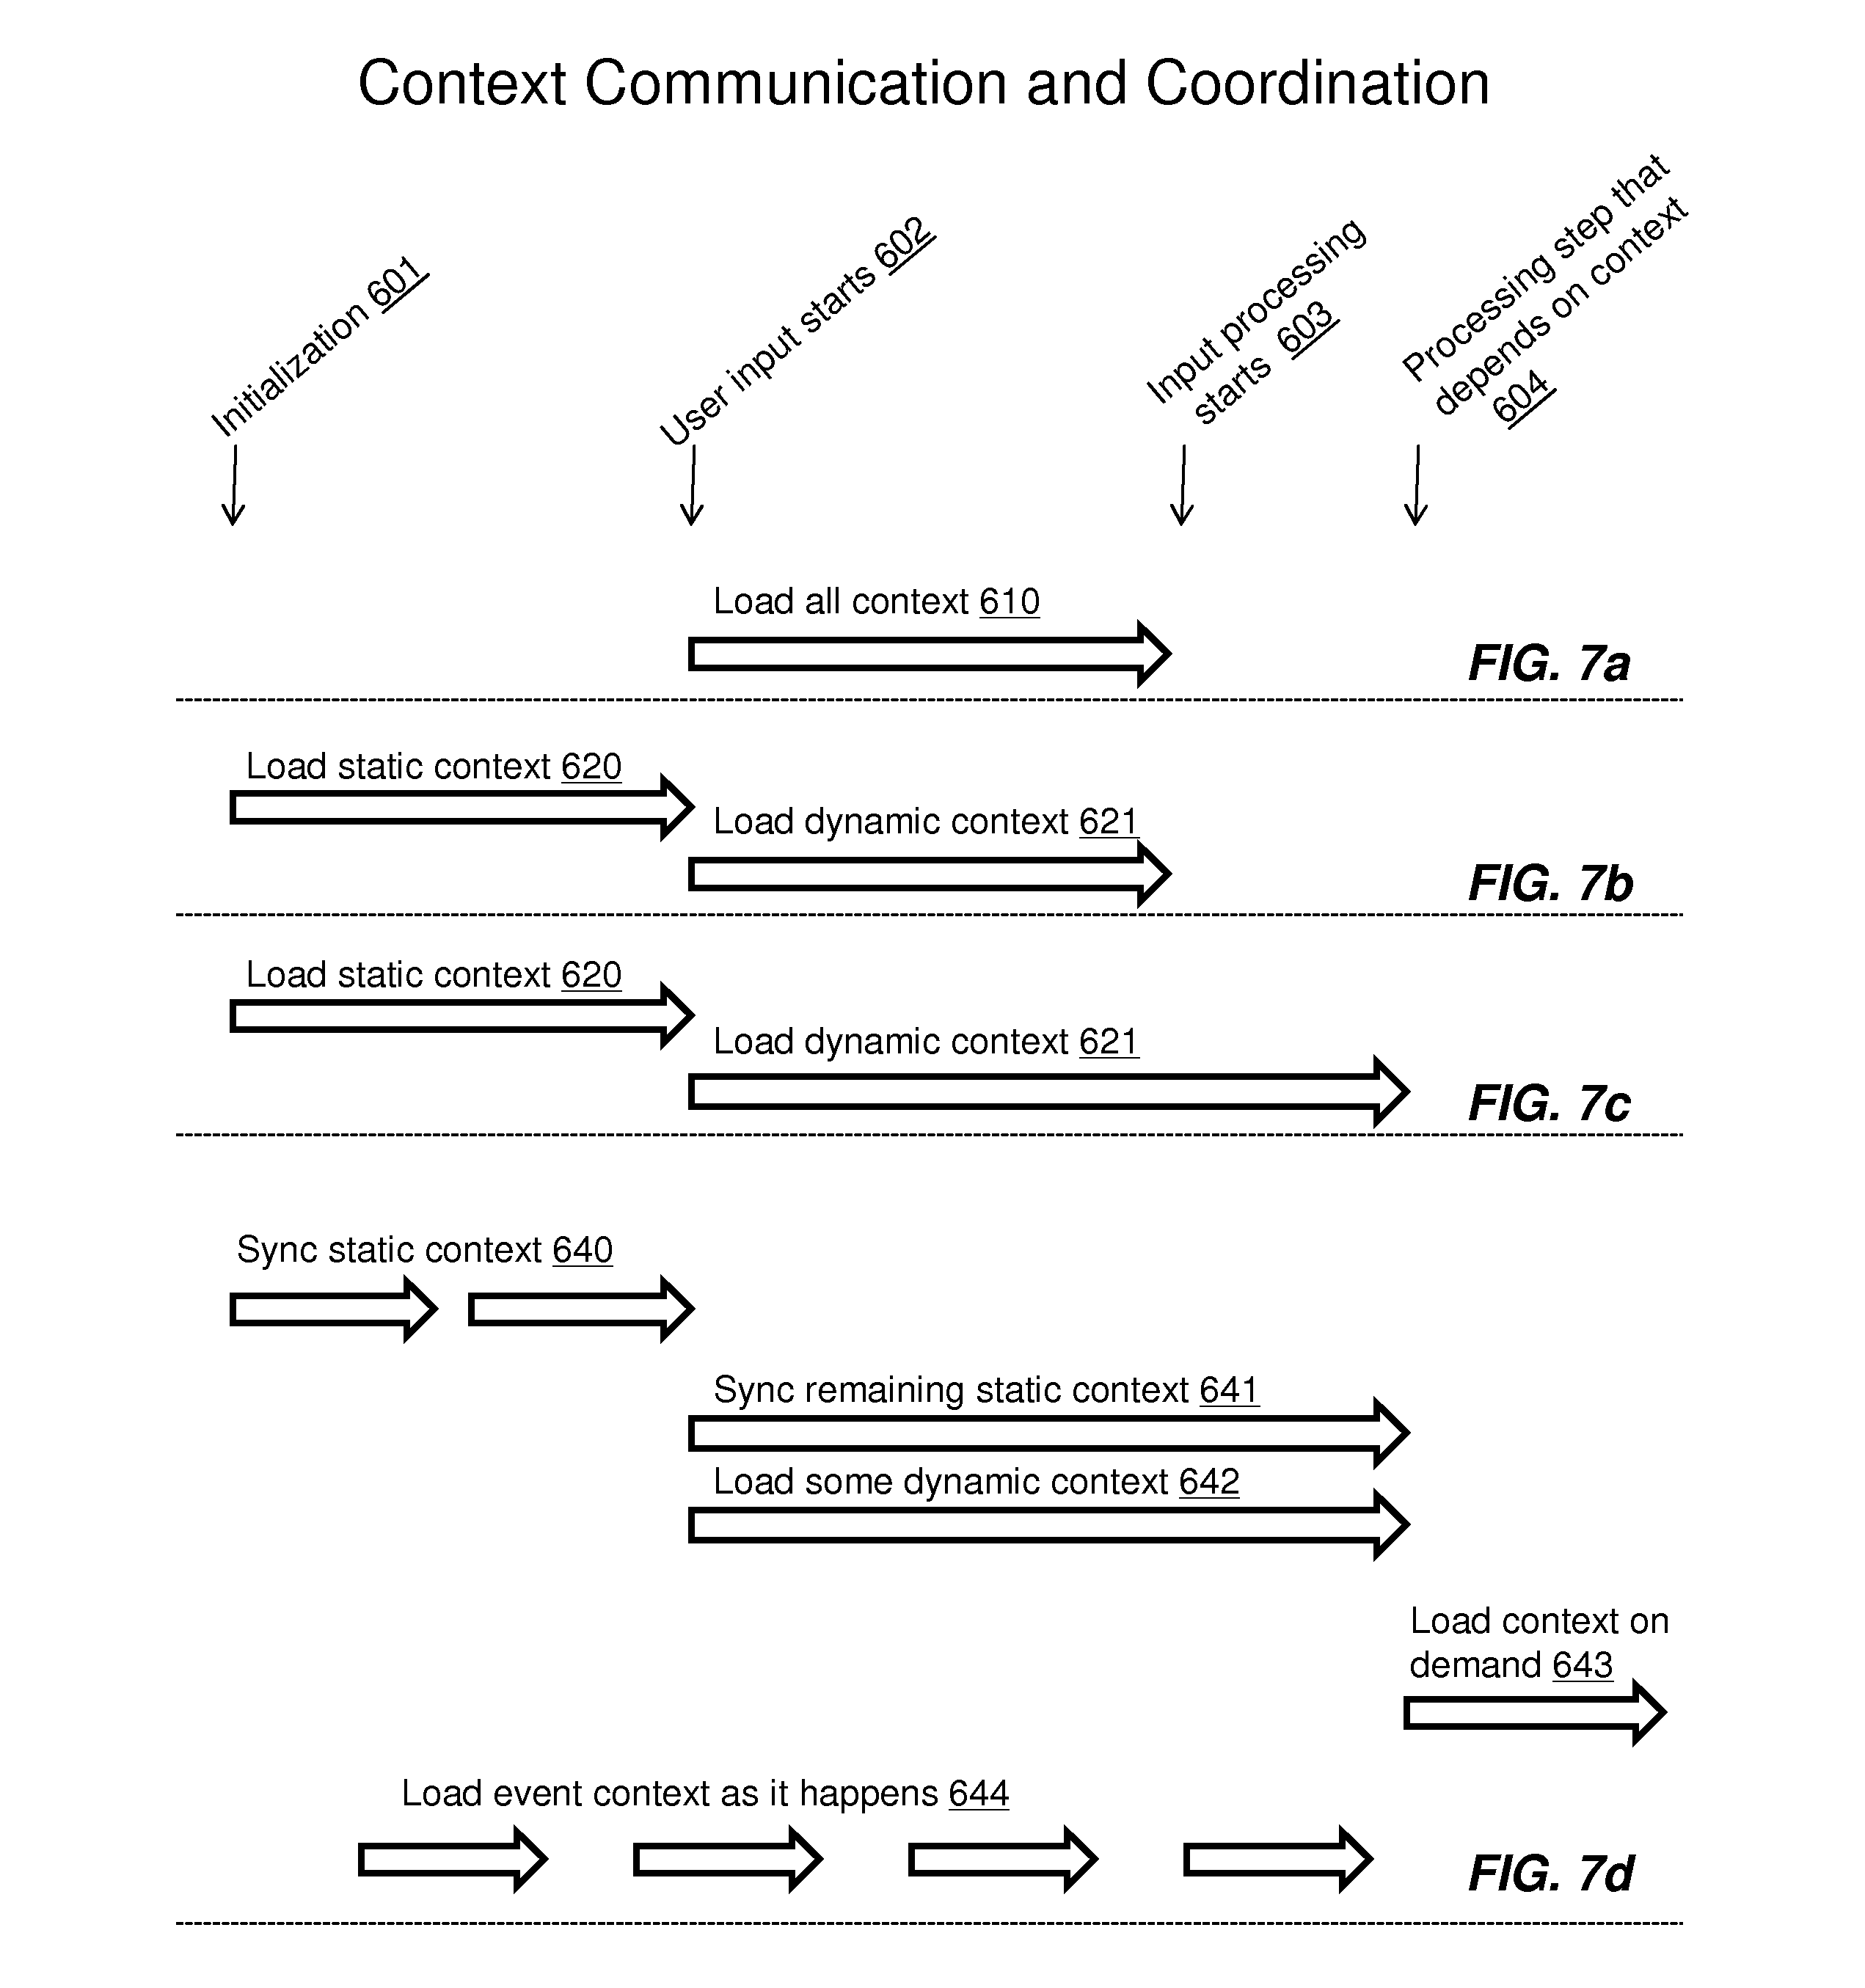 Us20120265528a1 using context information to facilitate us20120265528a1 using context information to facilitate processing of commands in a virtual assistant google patents ccuart Gallery